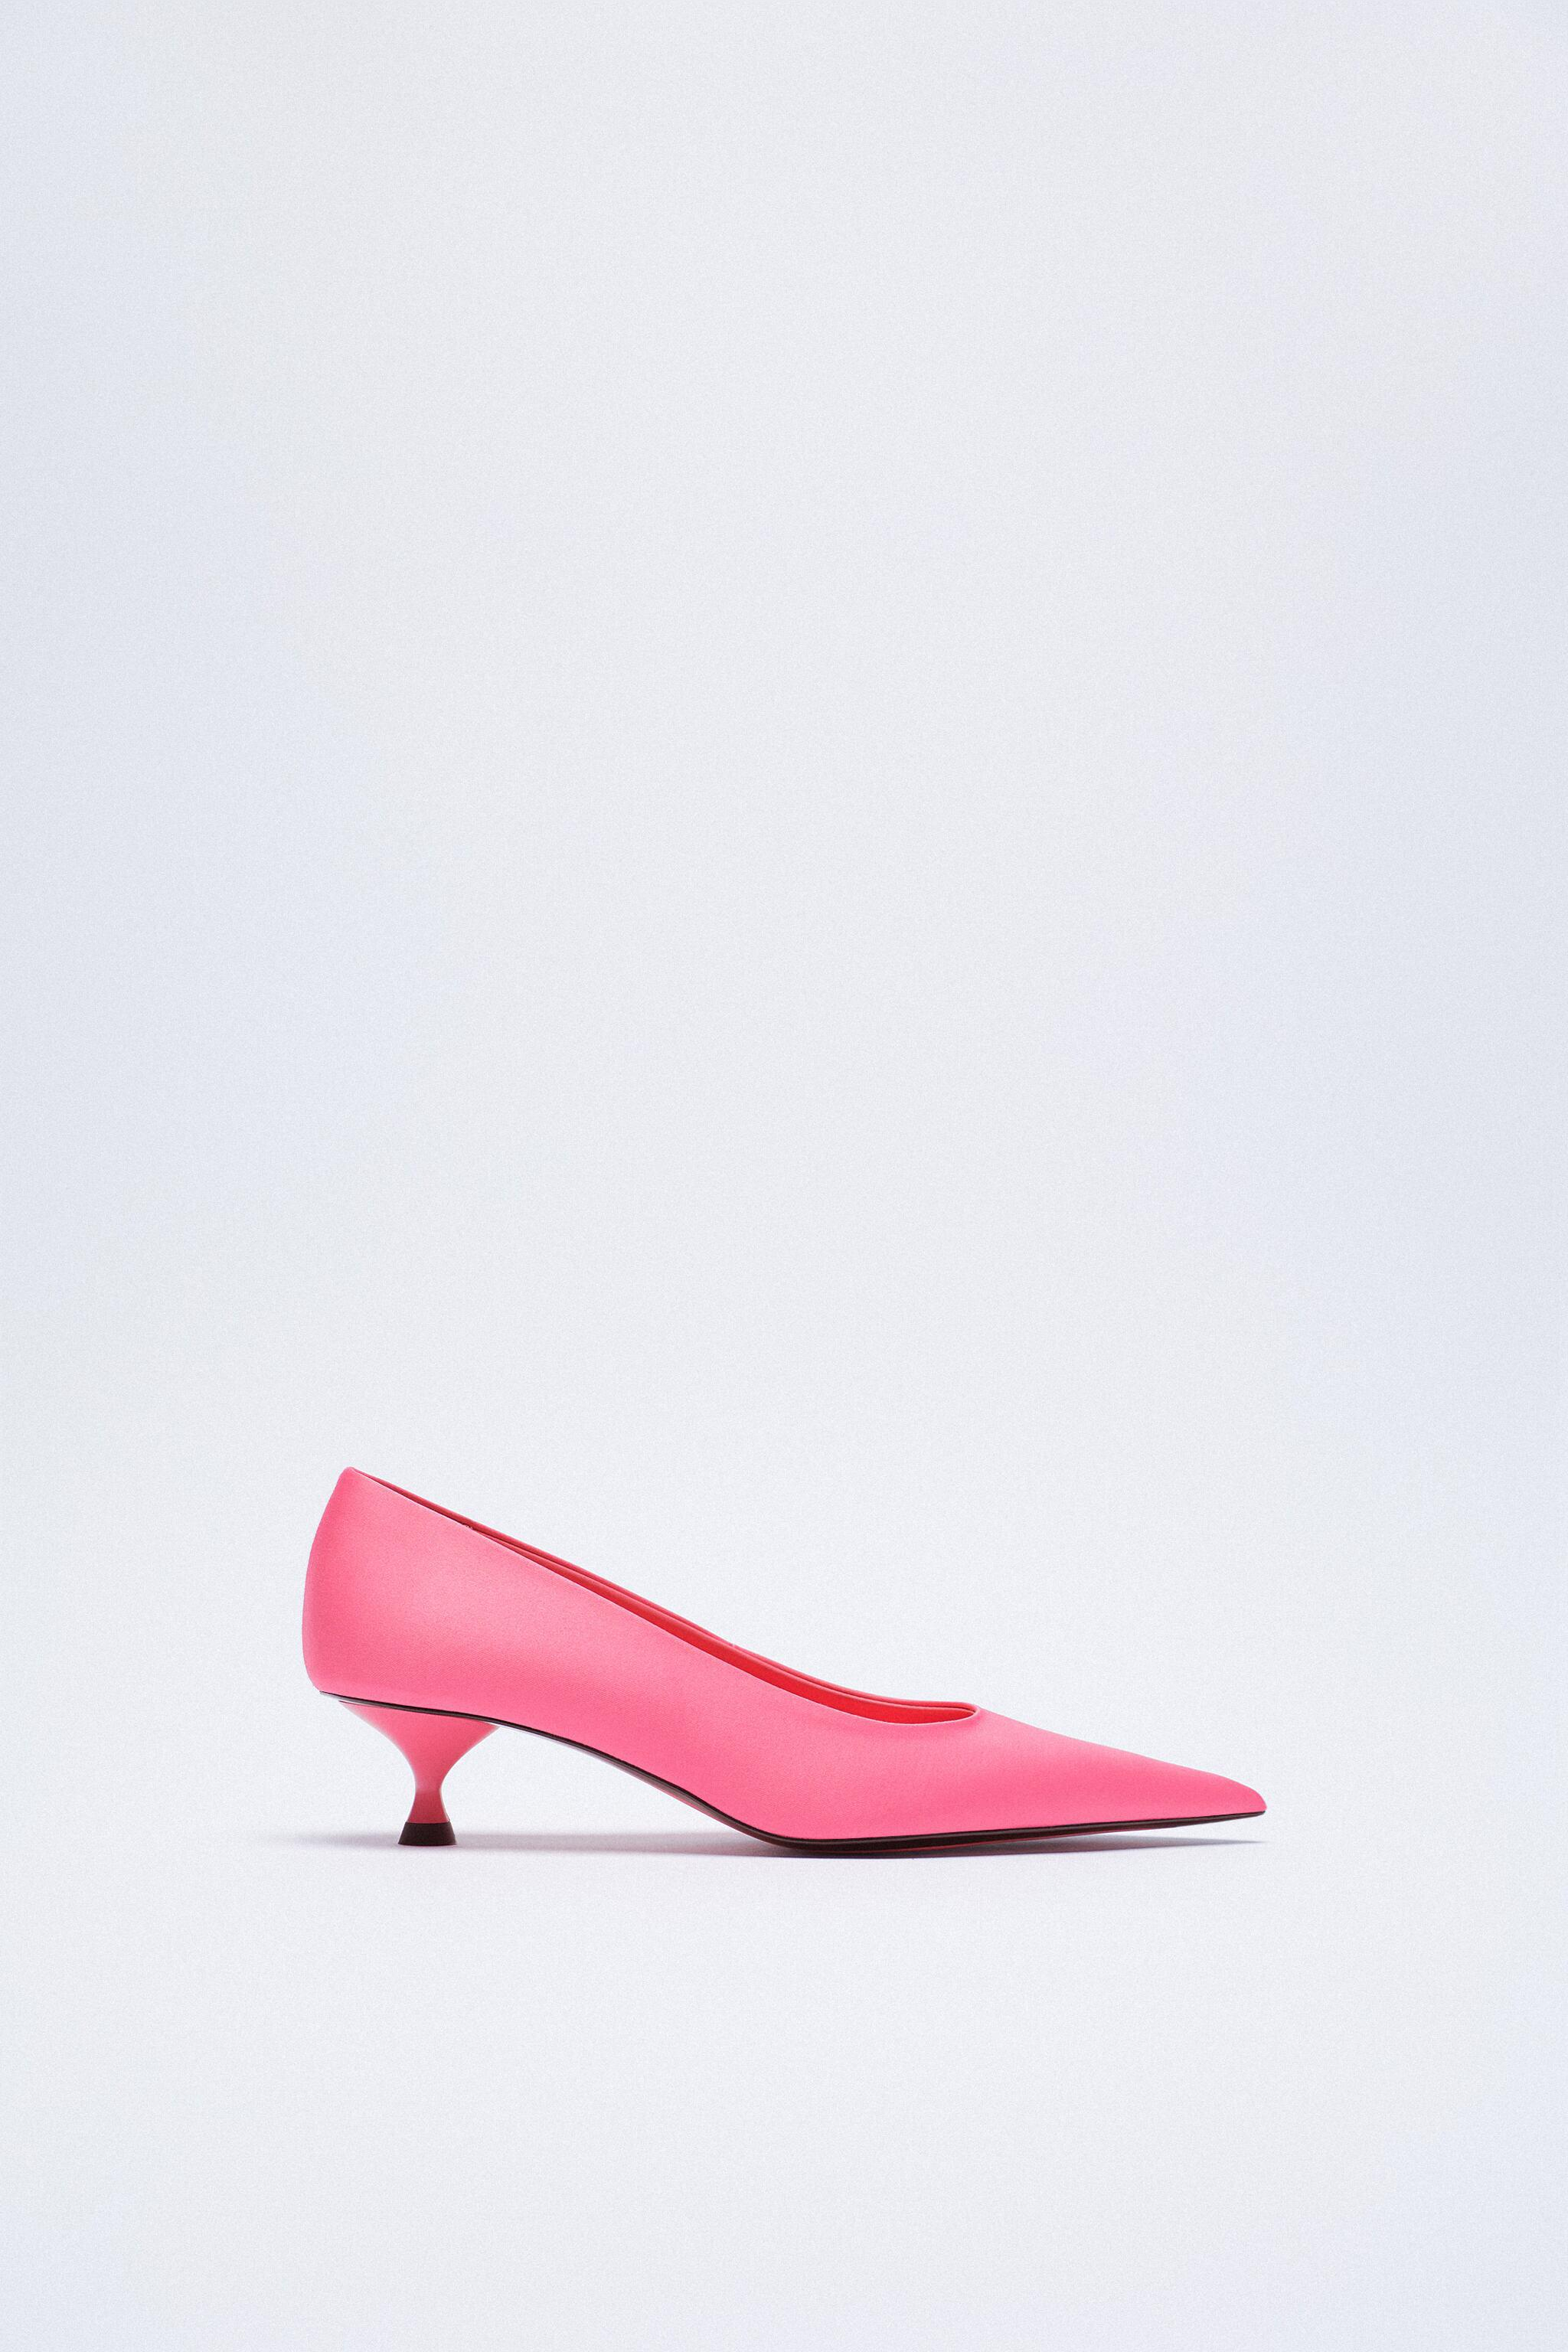 SATIN EFFECT POINTED TOE HEELS 8